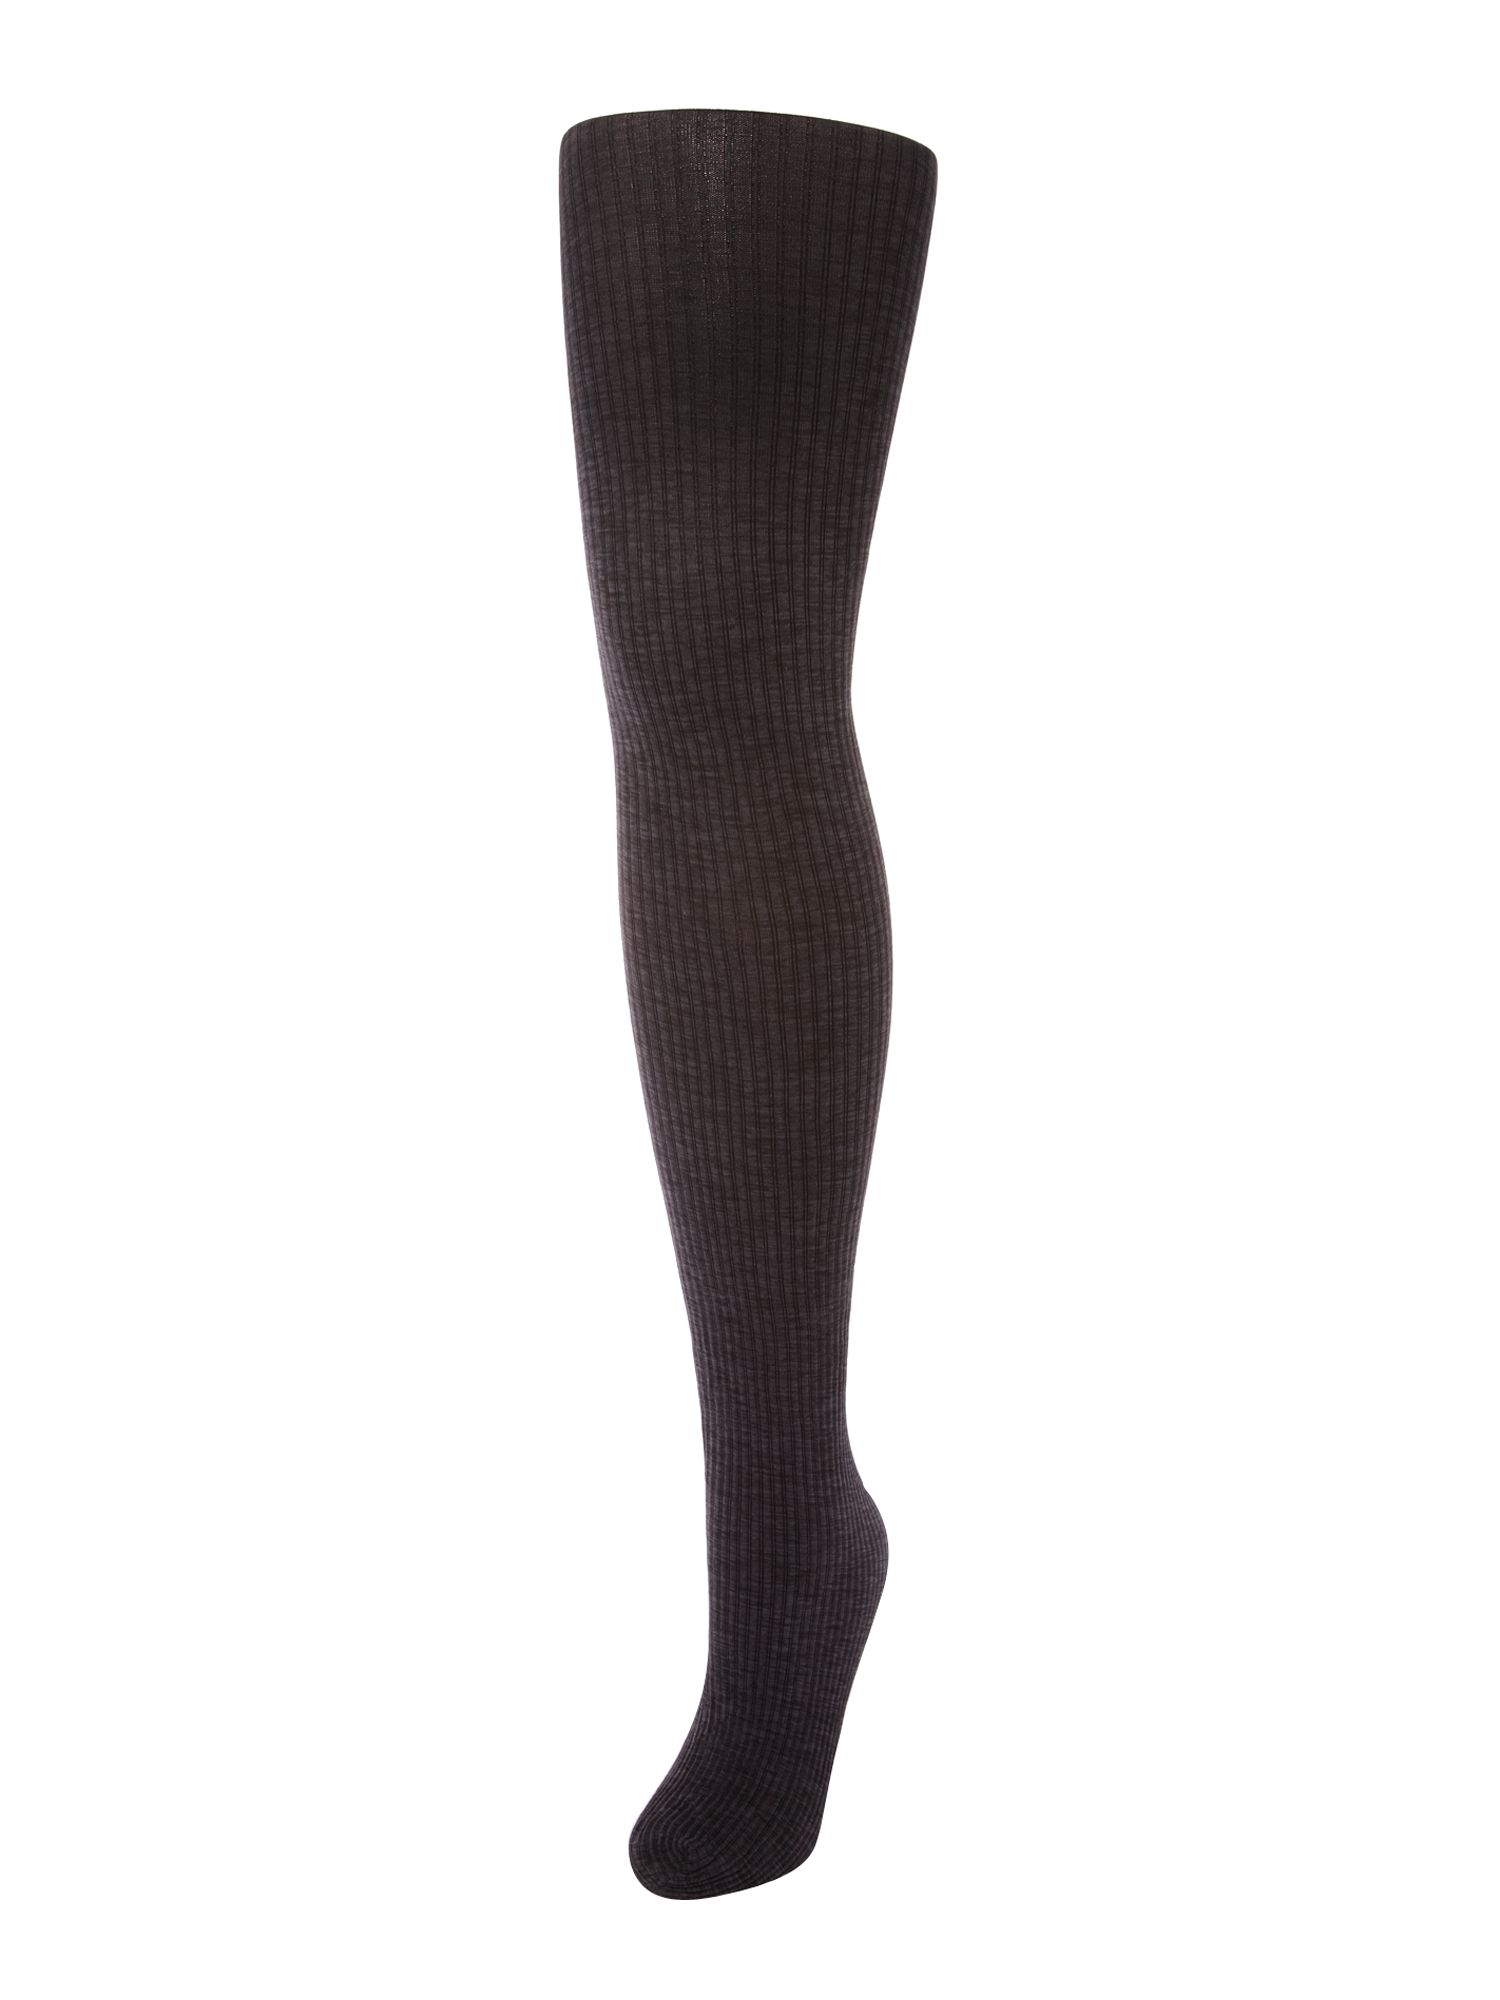 60 den ribbed marl opaque tights